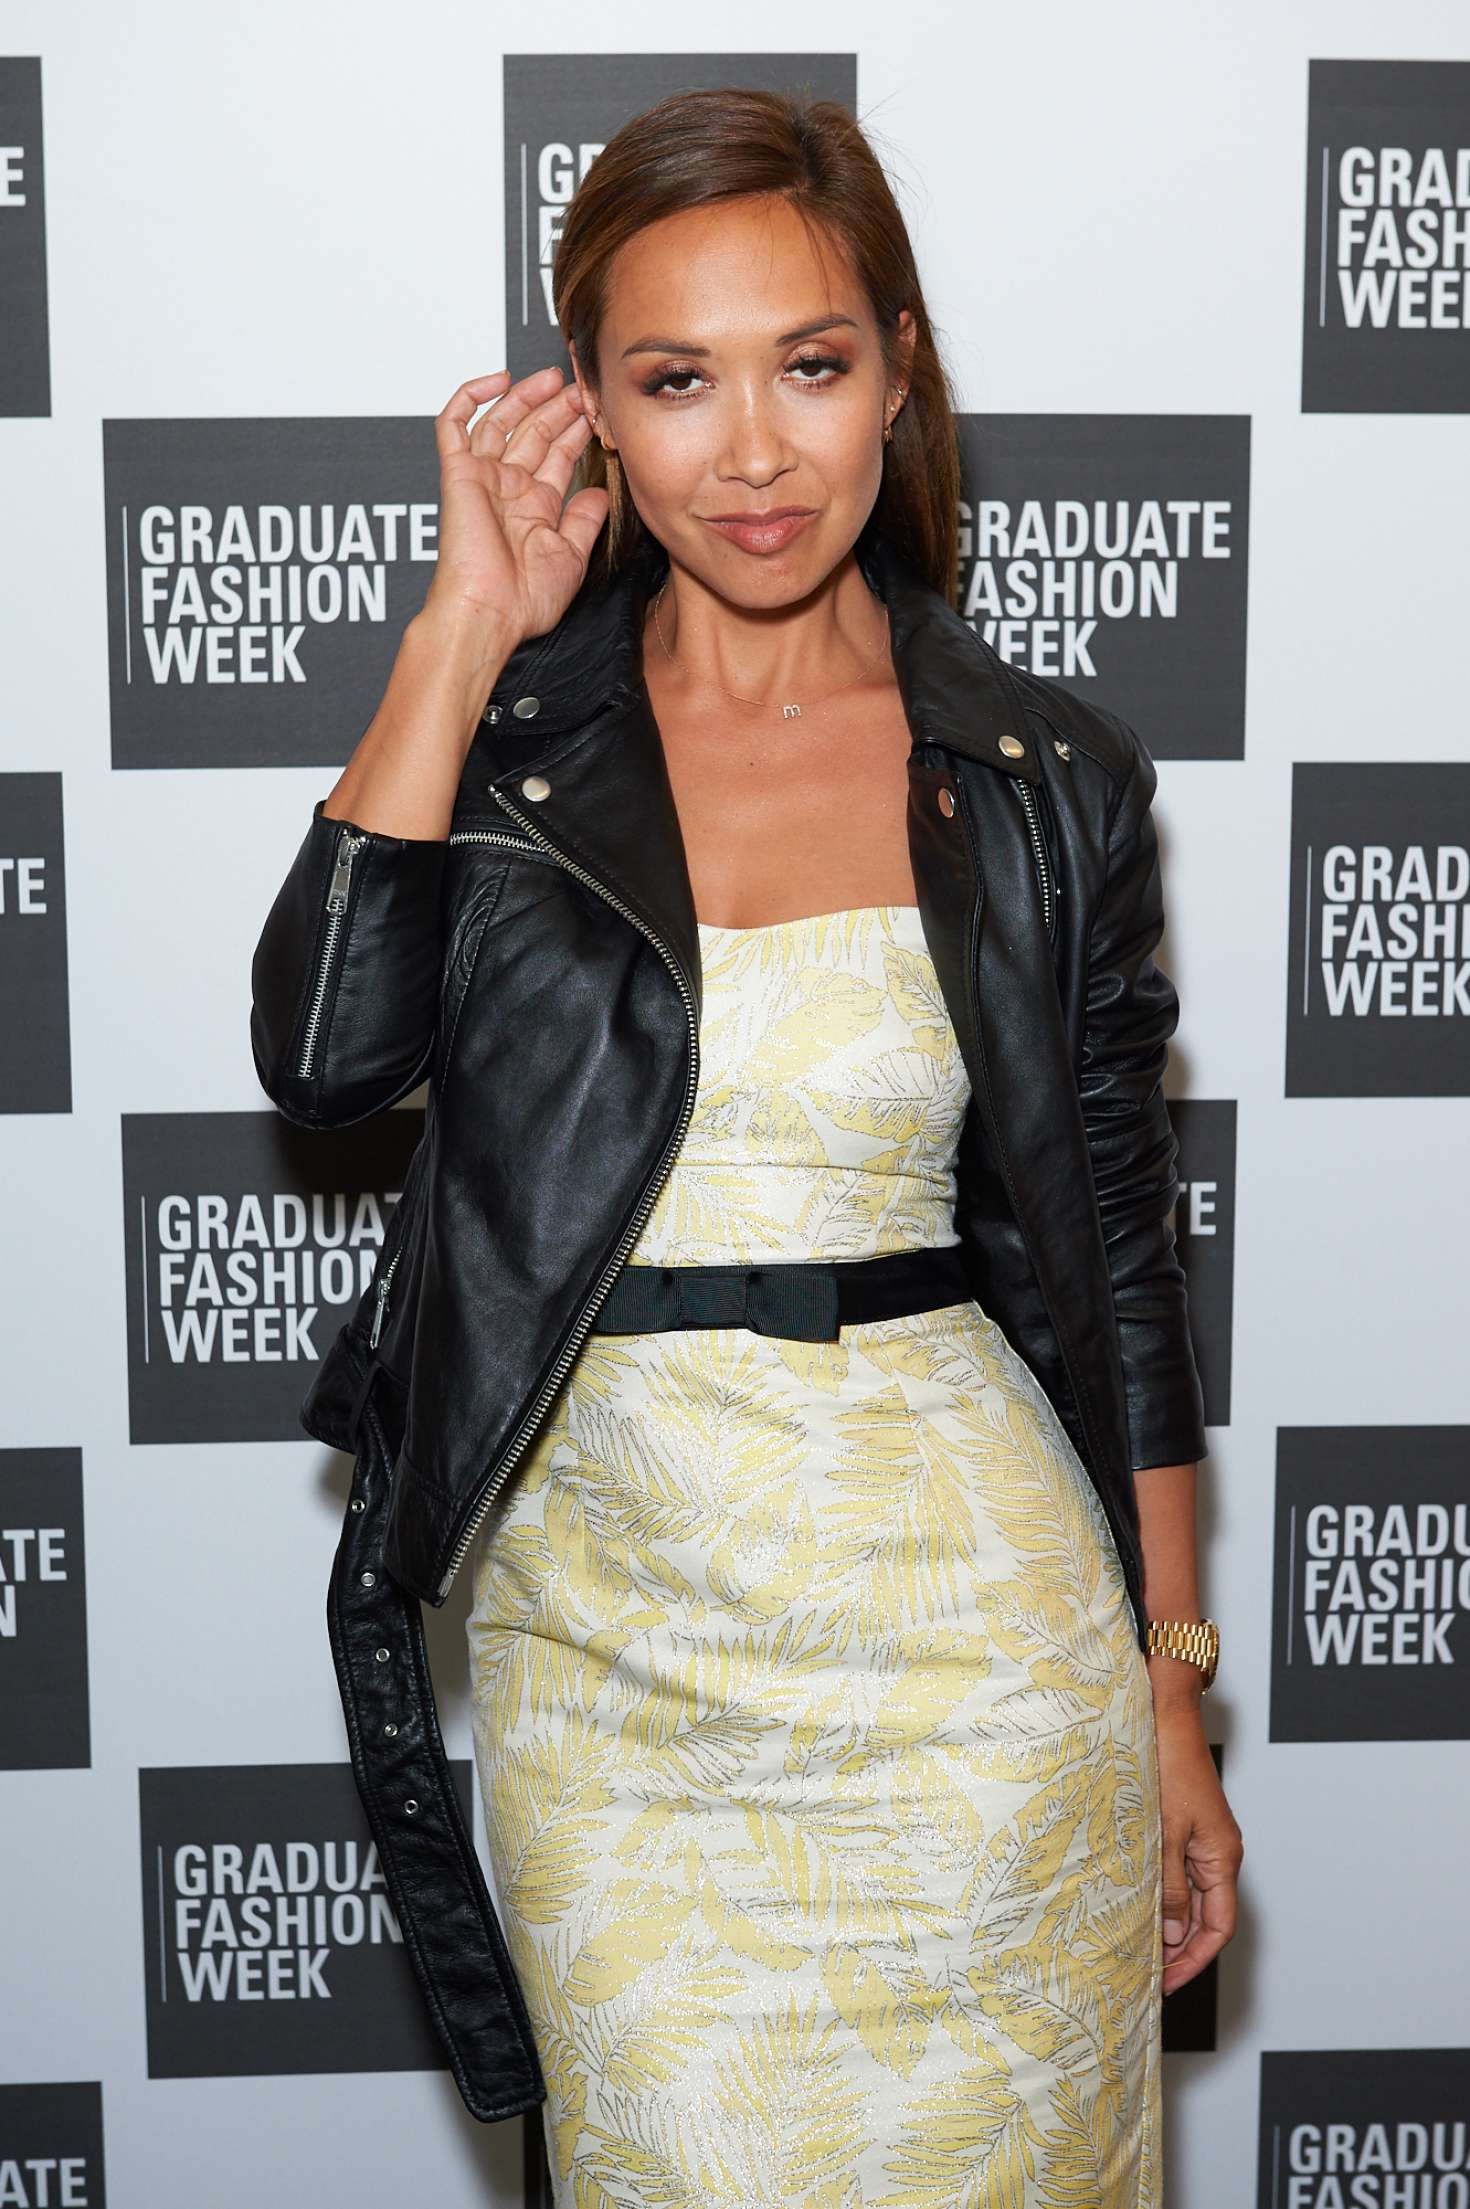 Alisha Klass Photos myleene klass: graduate fashion awards in london -13 | gotceleb